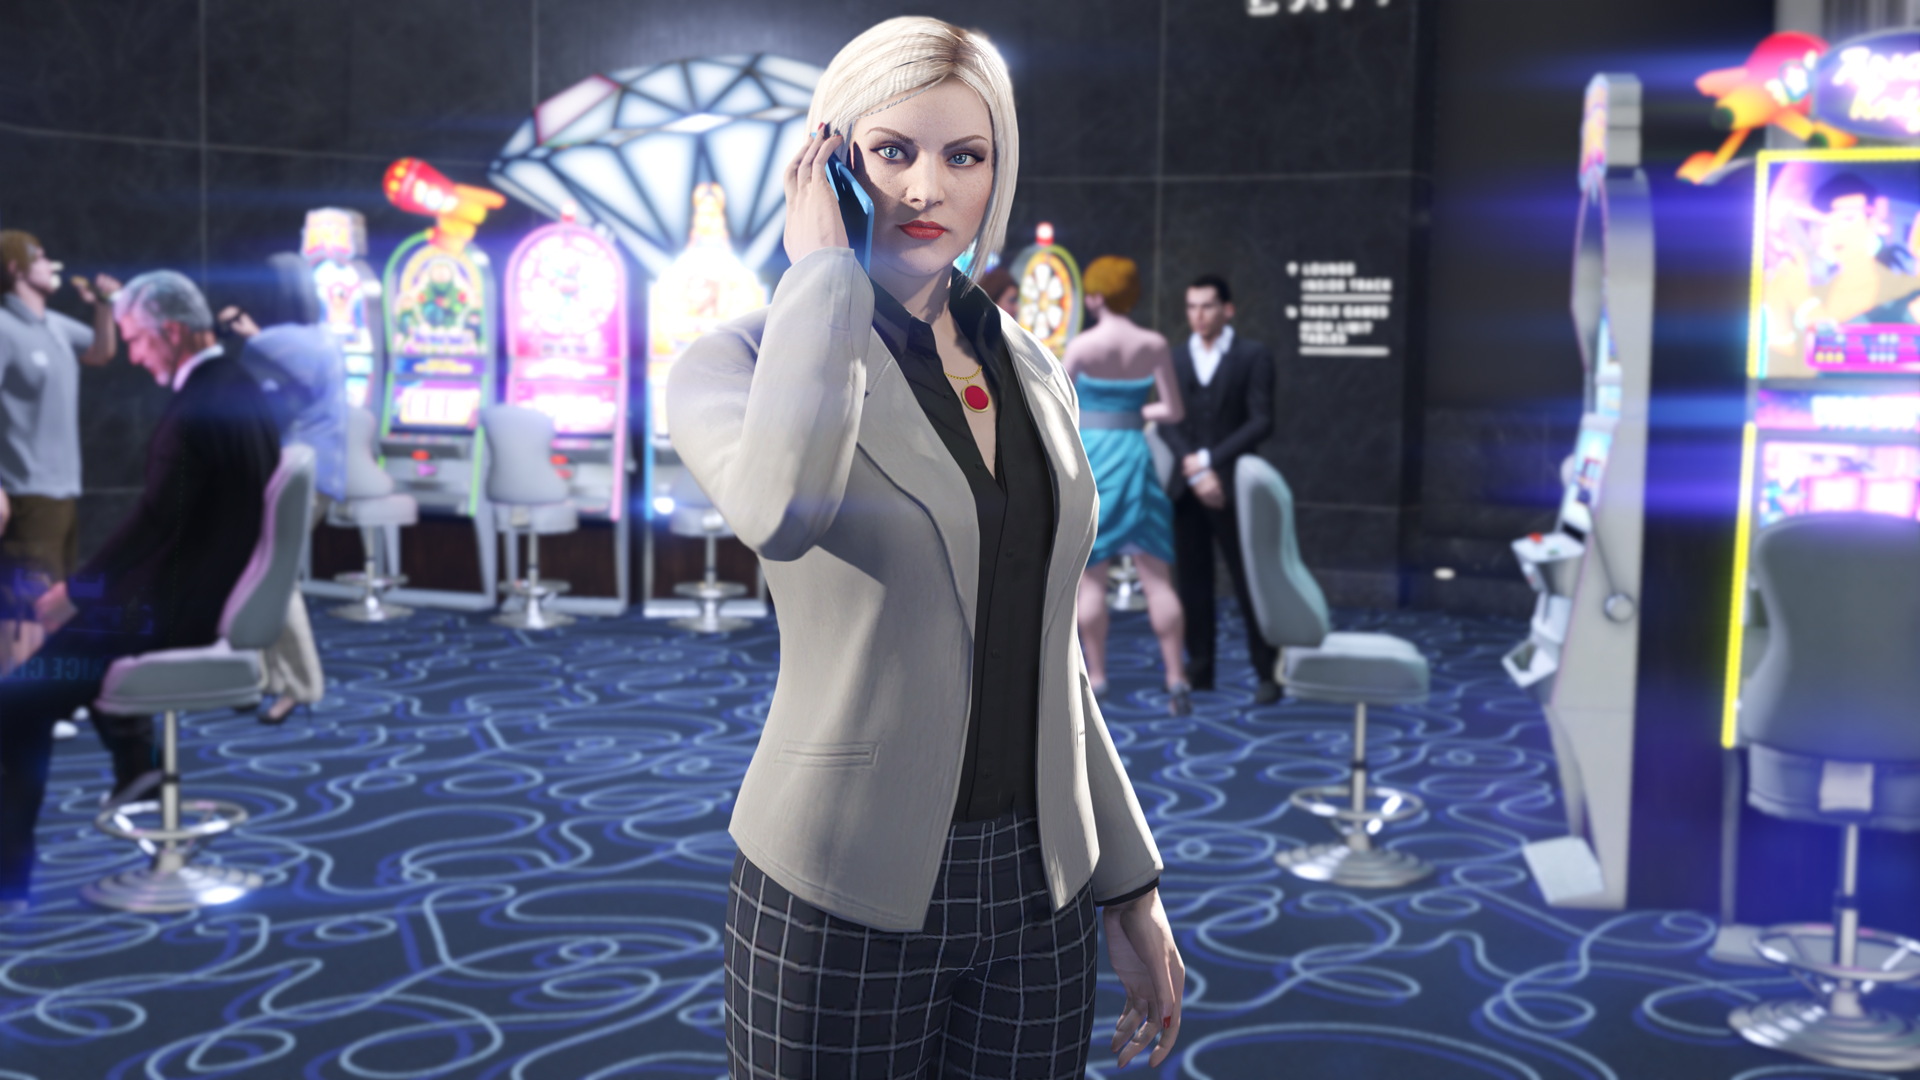 GTA casino missions list: how to get Enus Paragon R Armoured